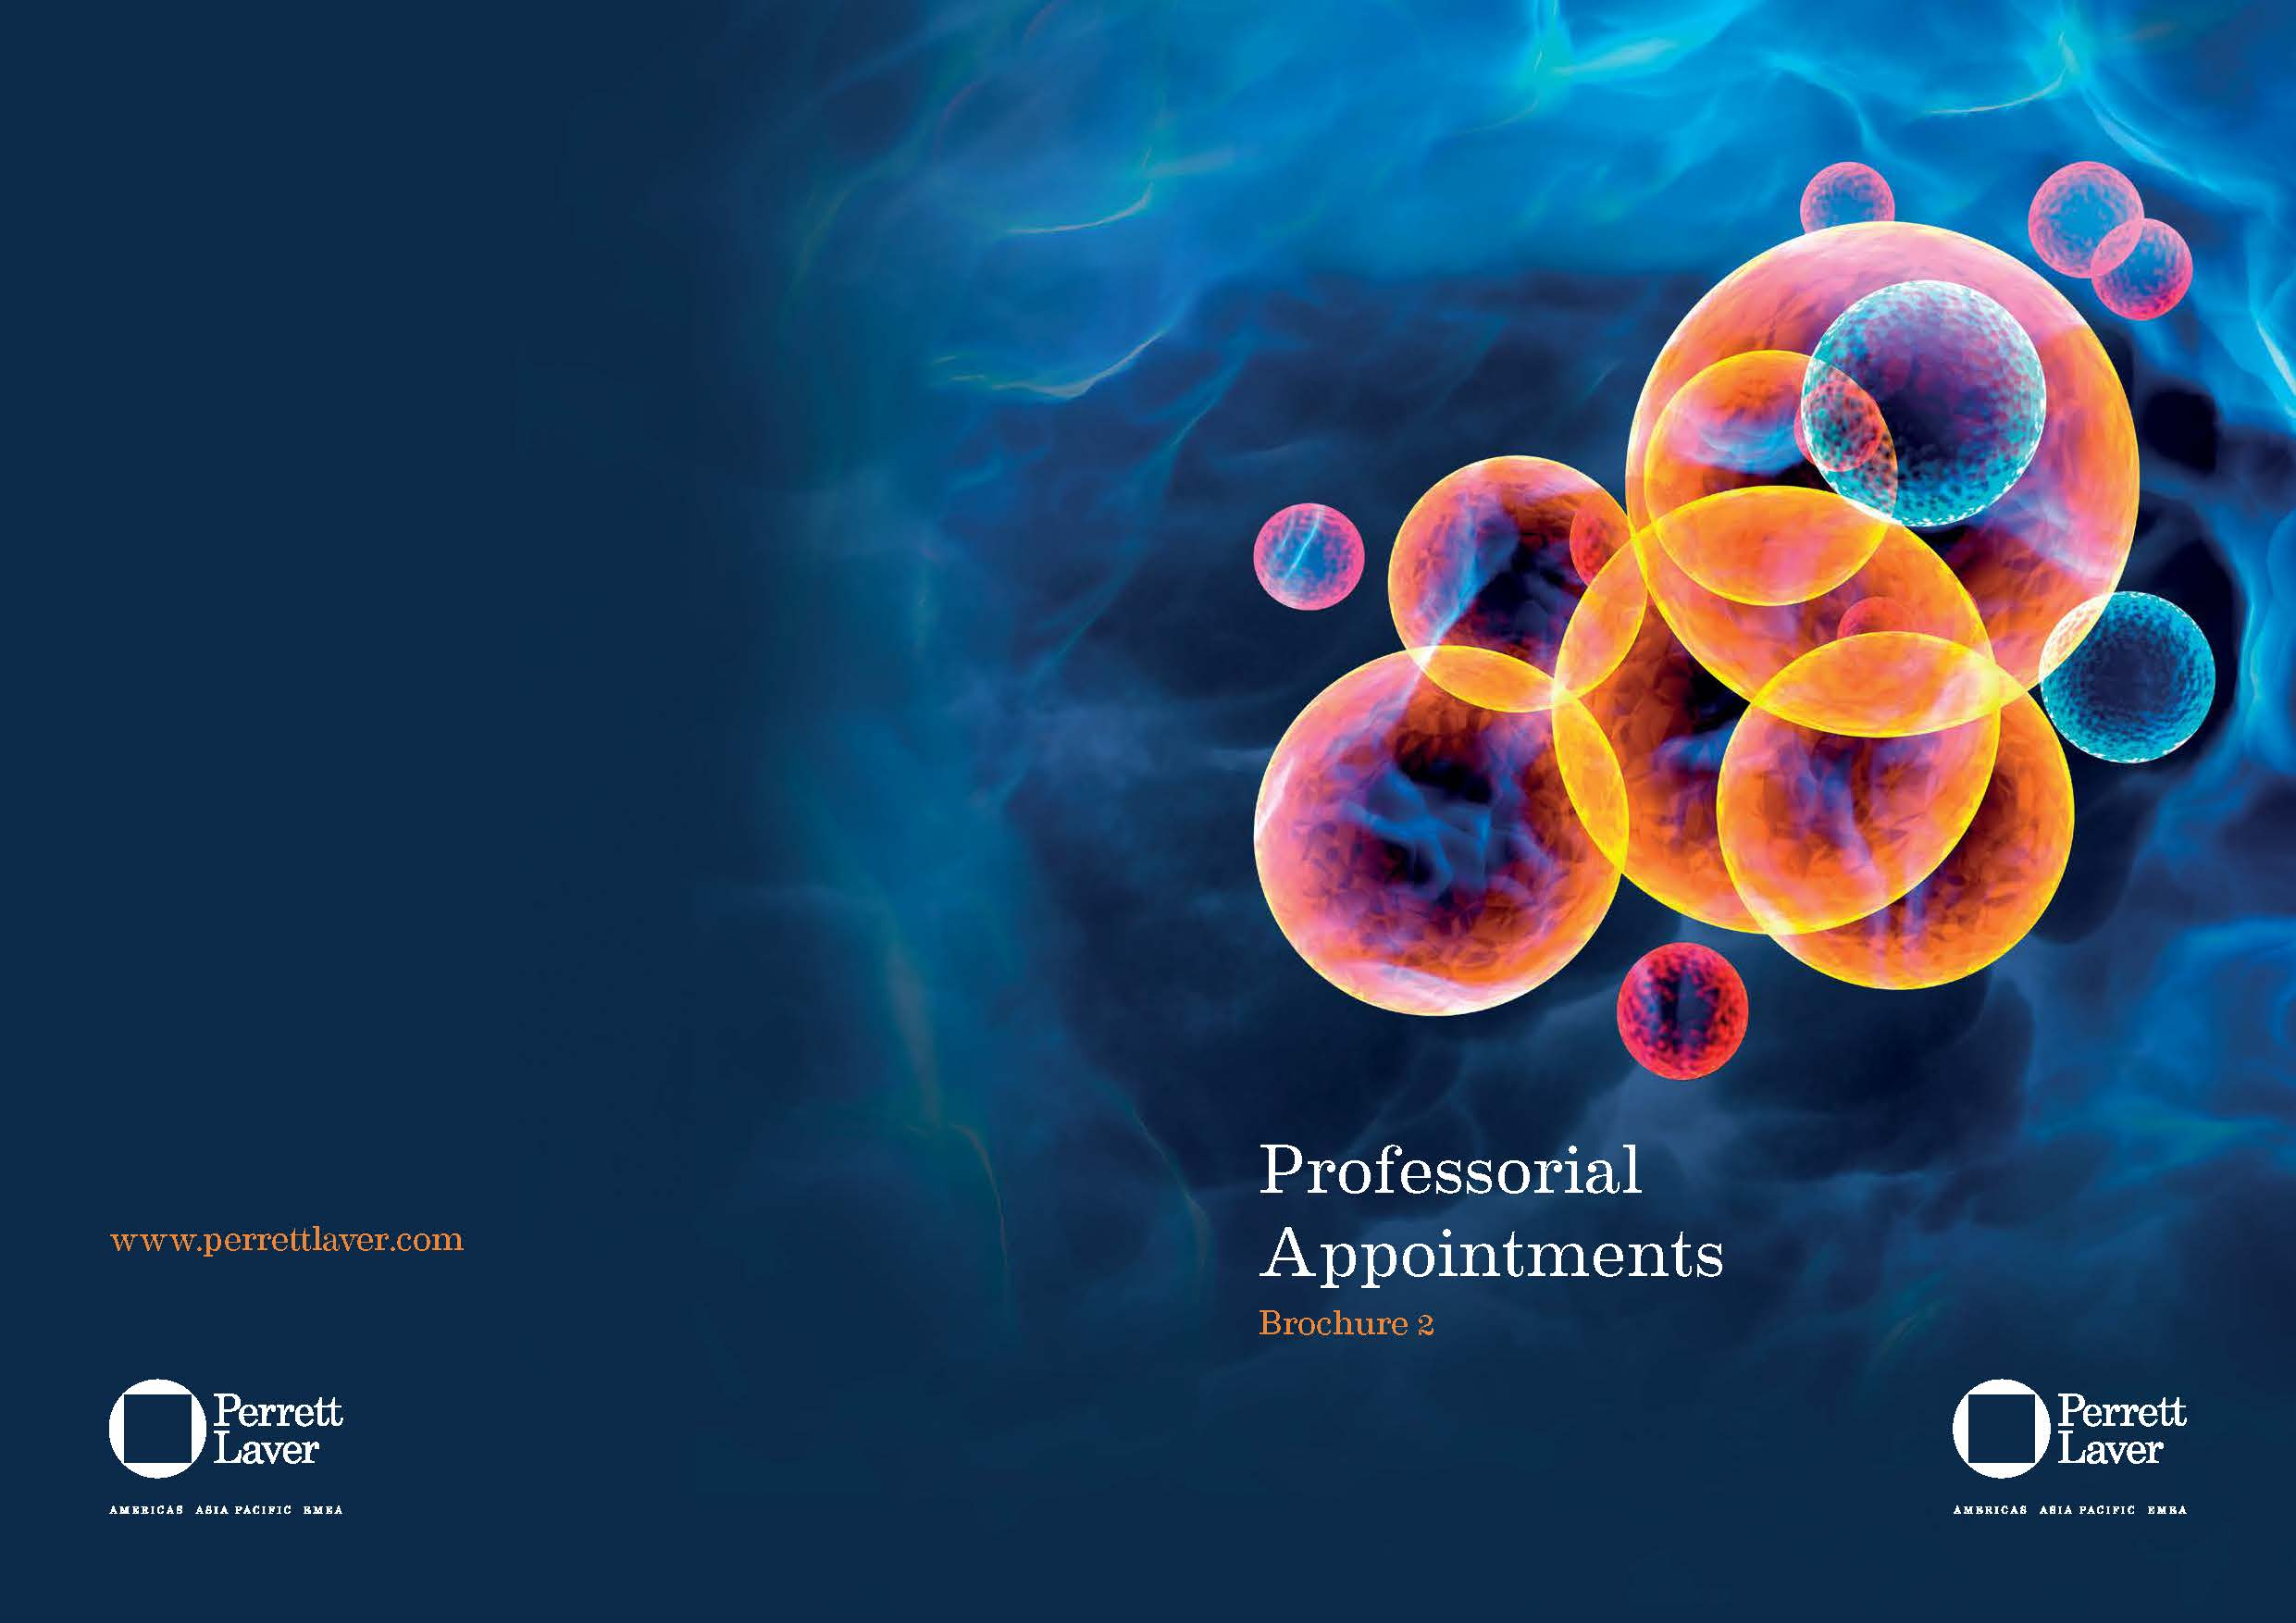 Professorial Appointments Brochure 2